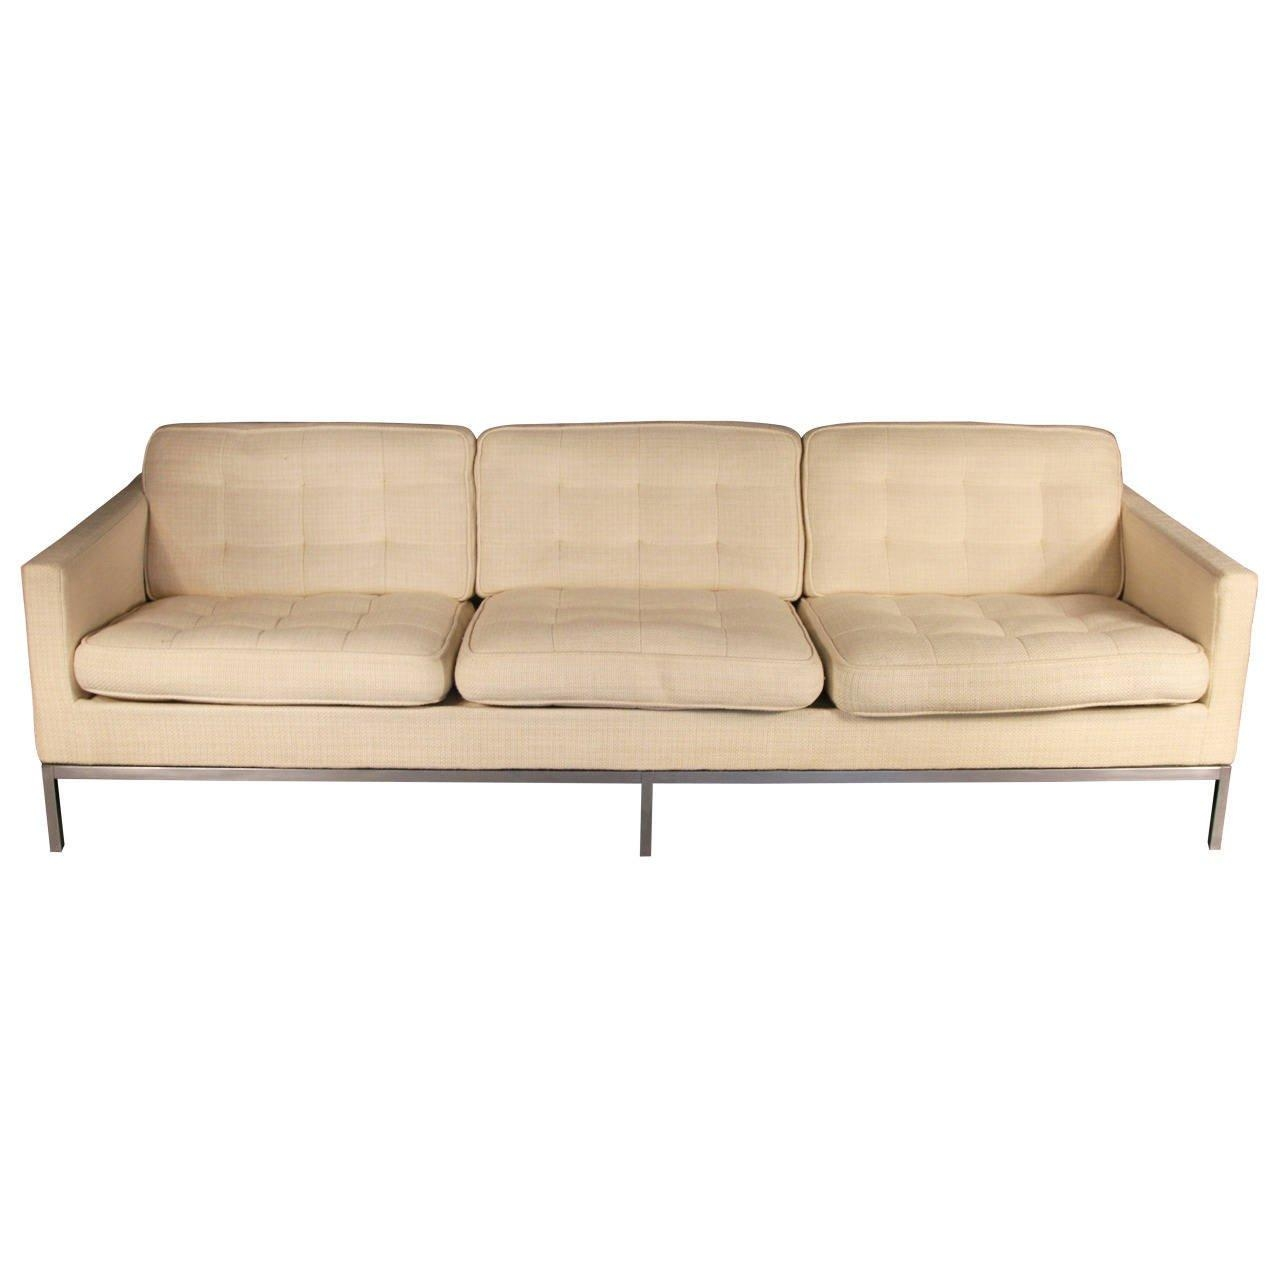 Florence Knoll Sofas – 54 For Sale At 1Stdibs Within Florence Large Sofas (Image 5 of 20)